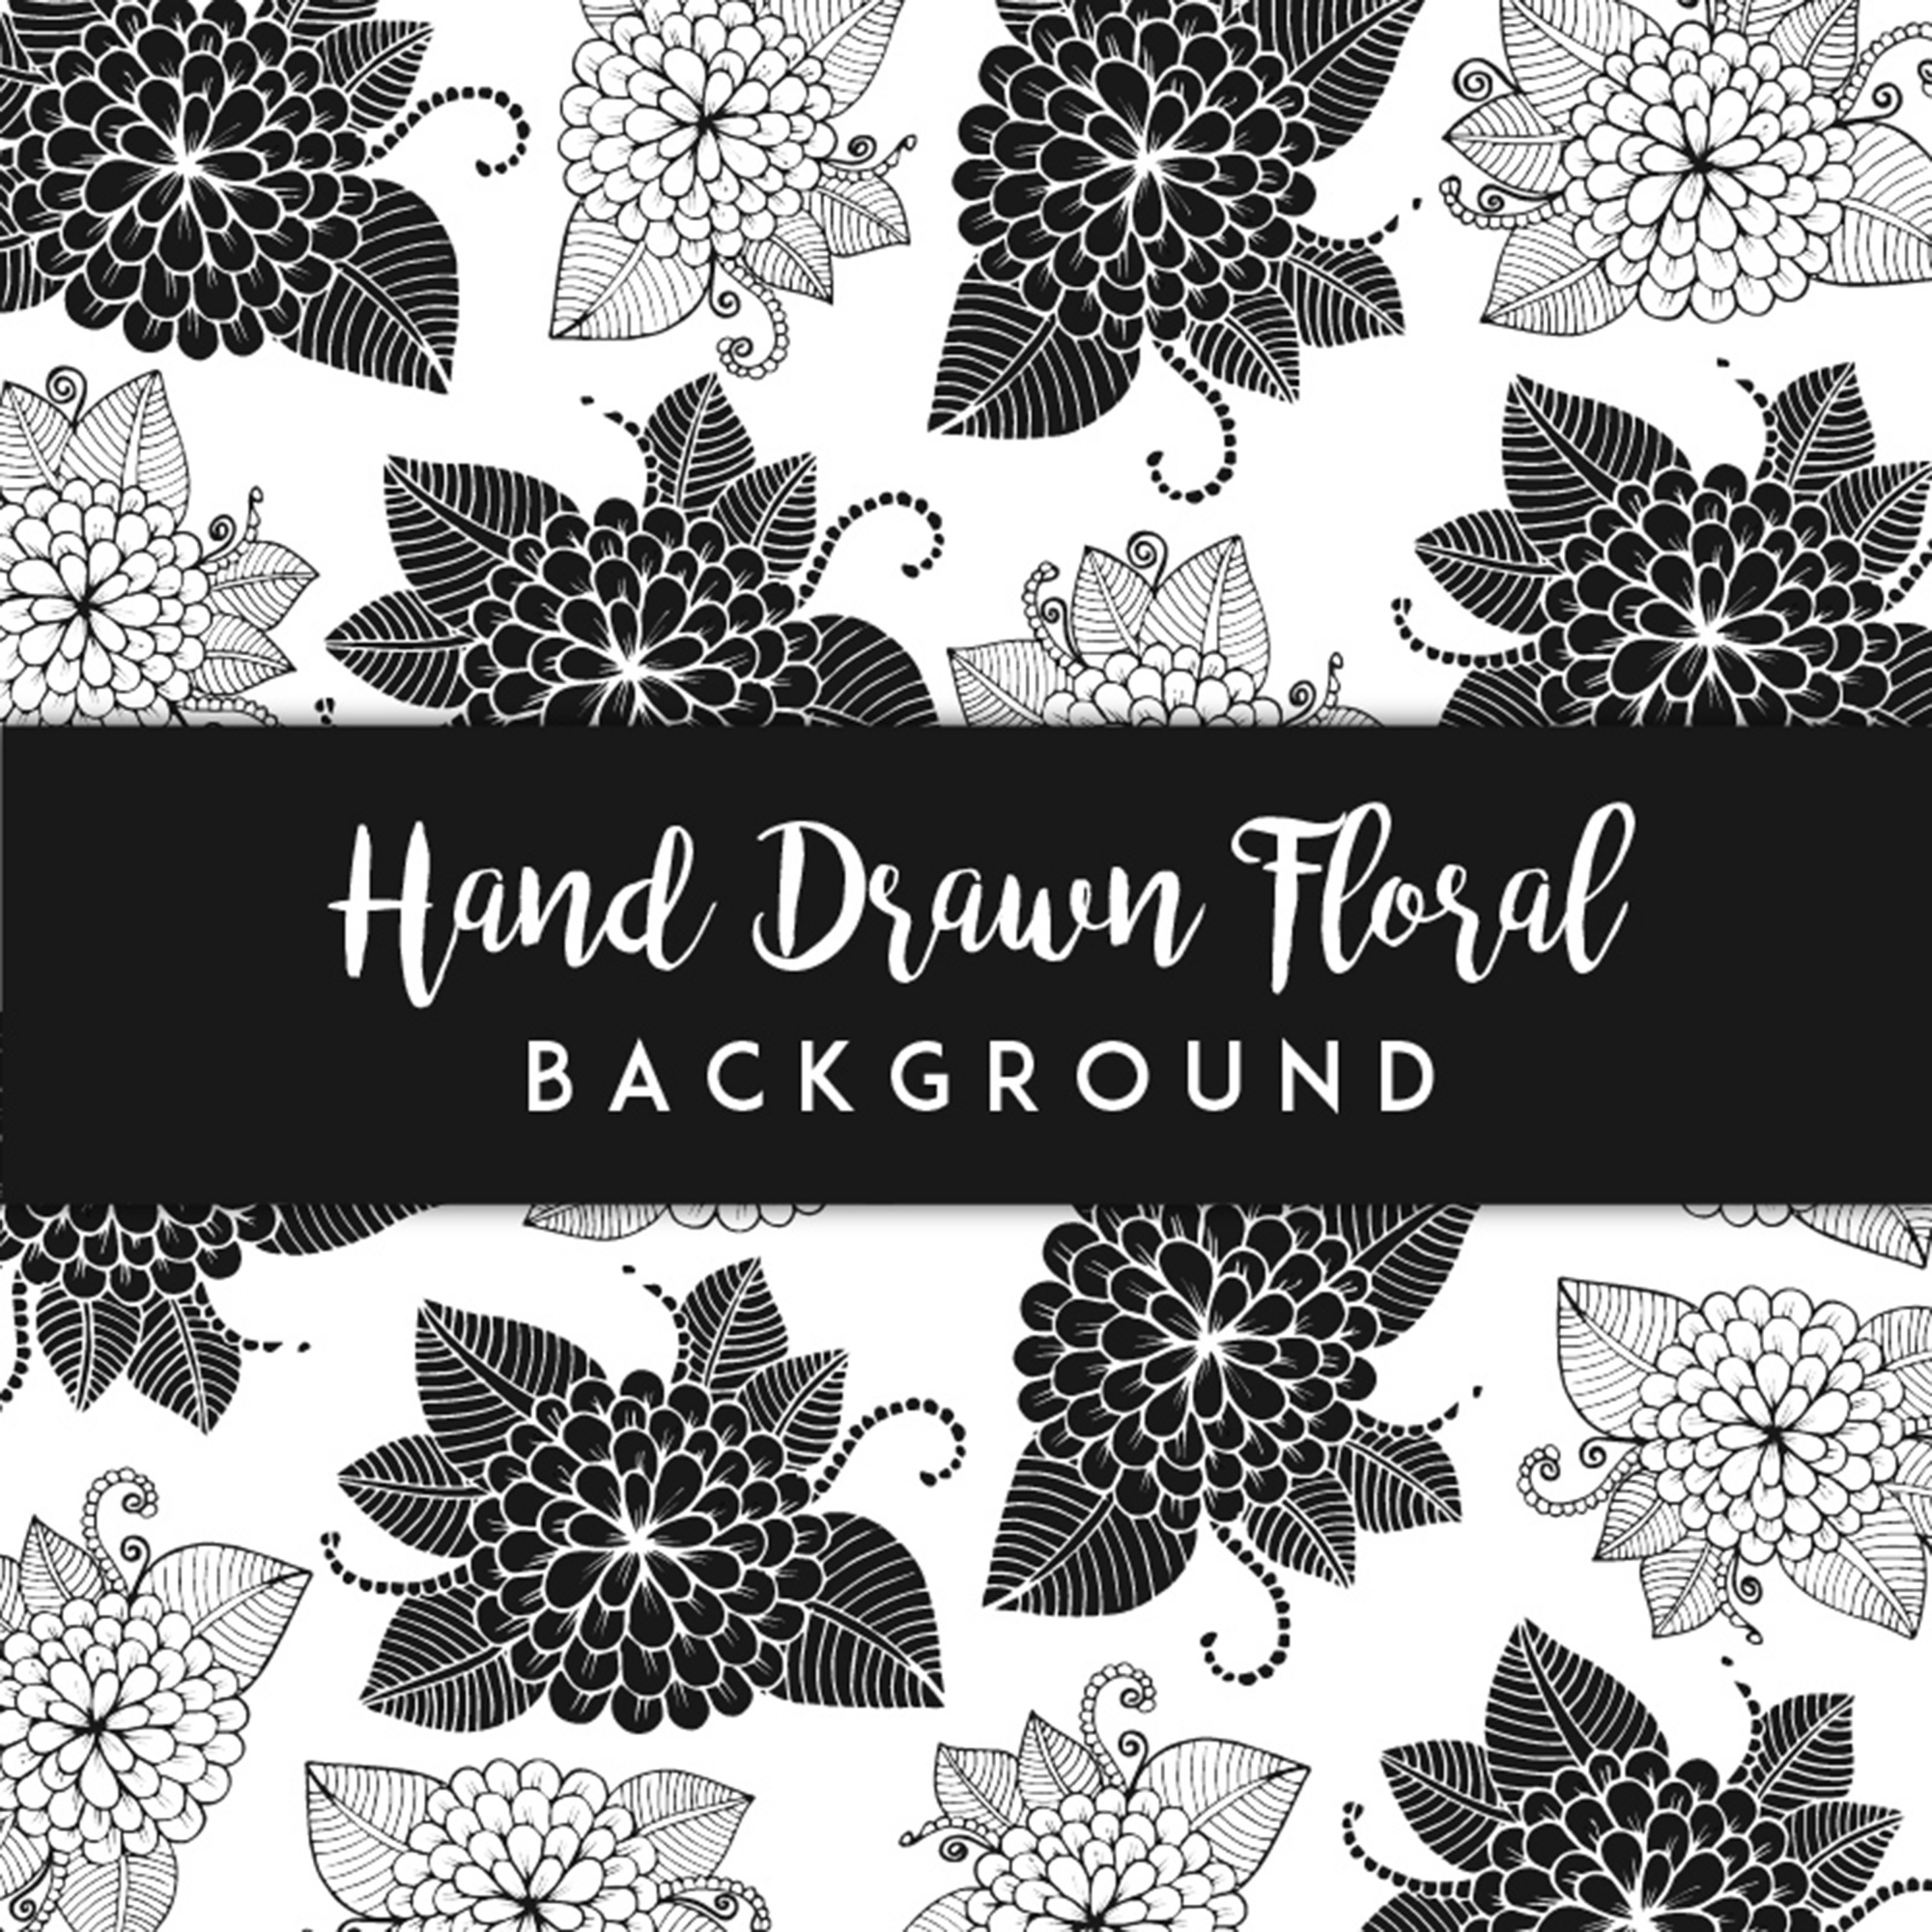 Black and White Hand Drawn Floral Background